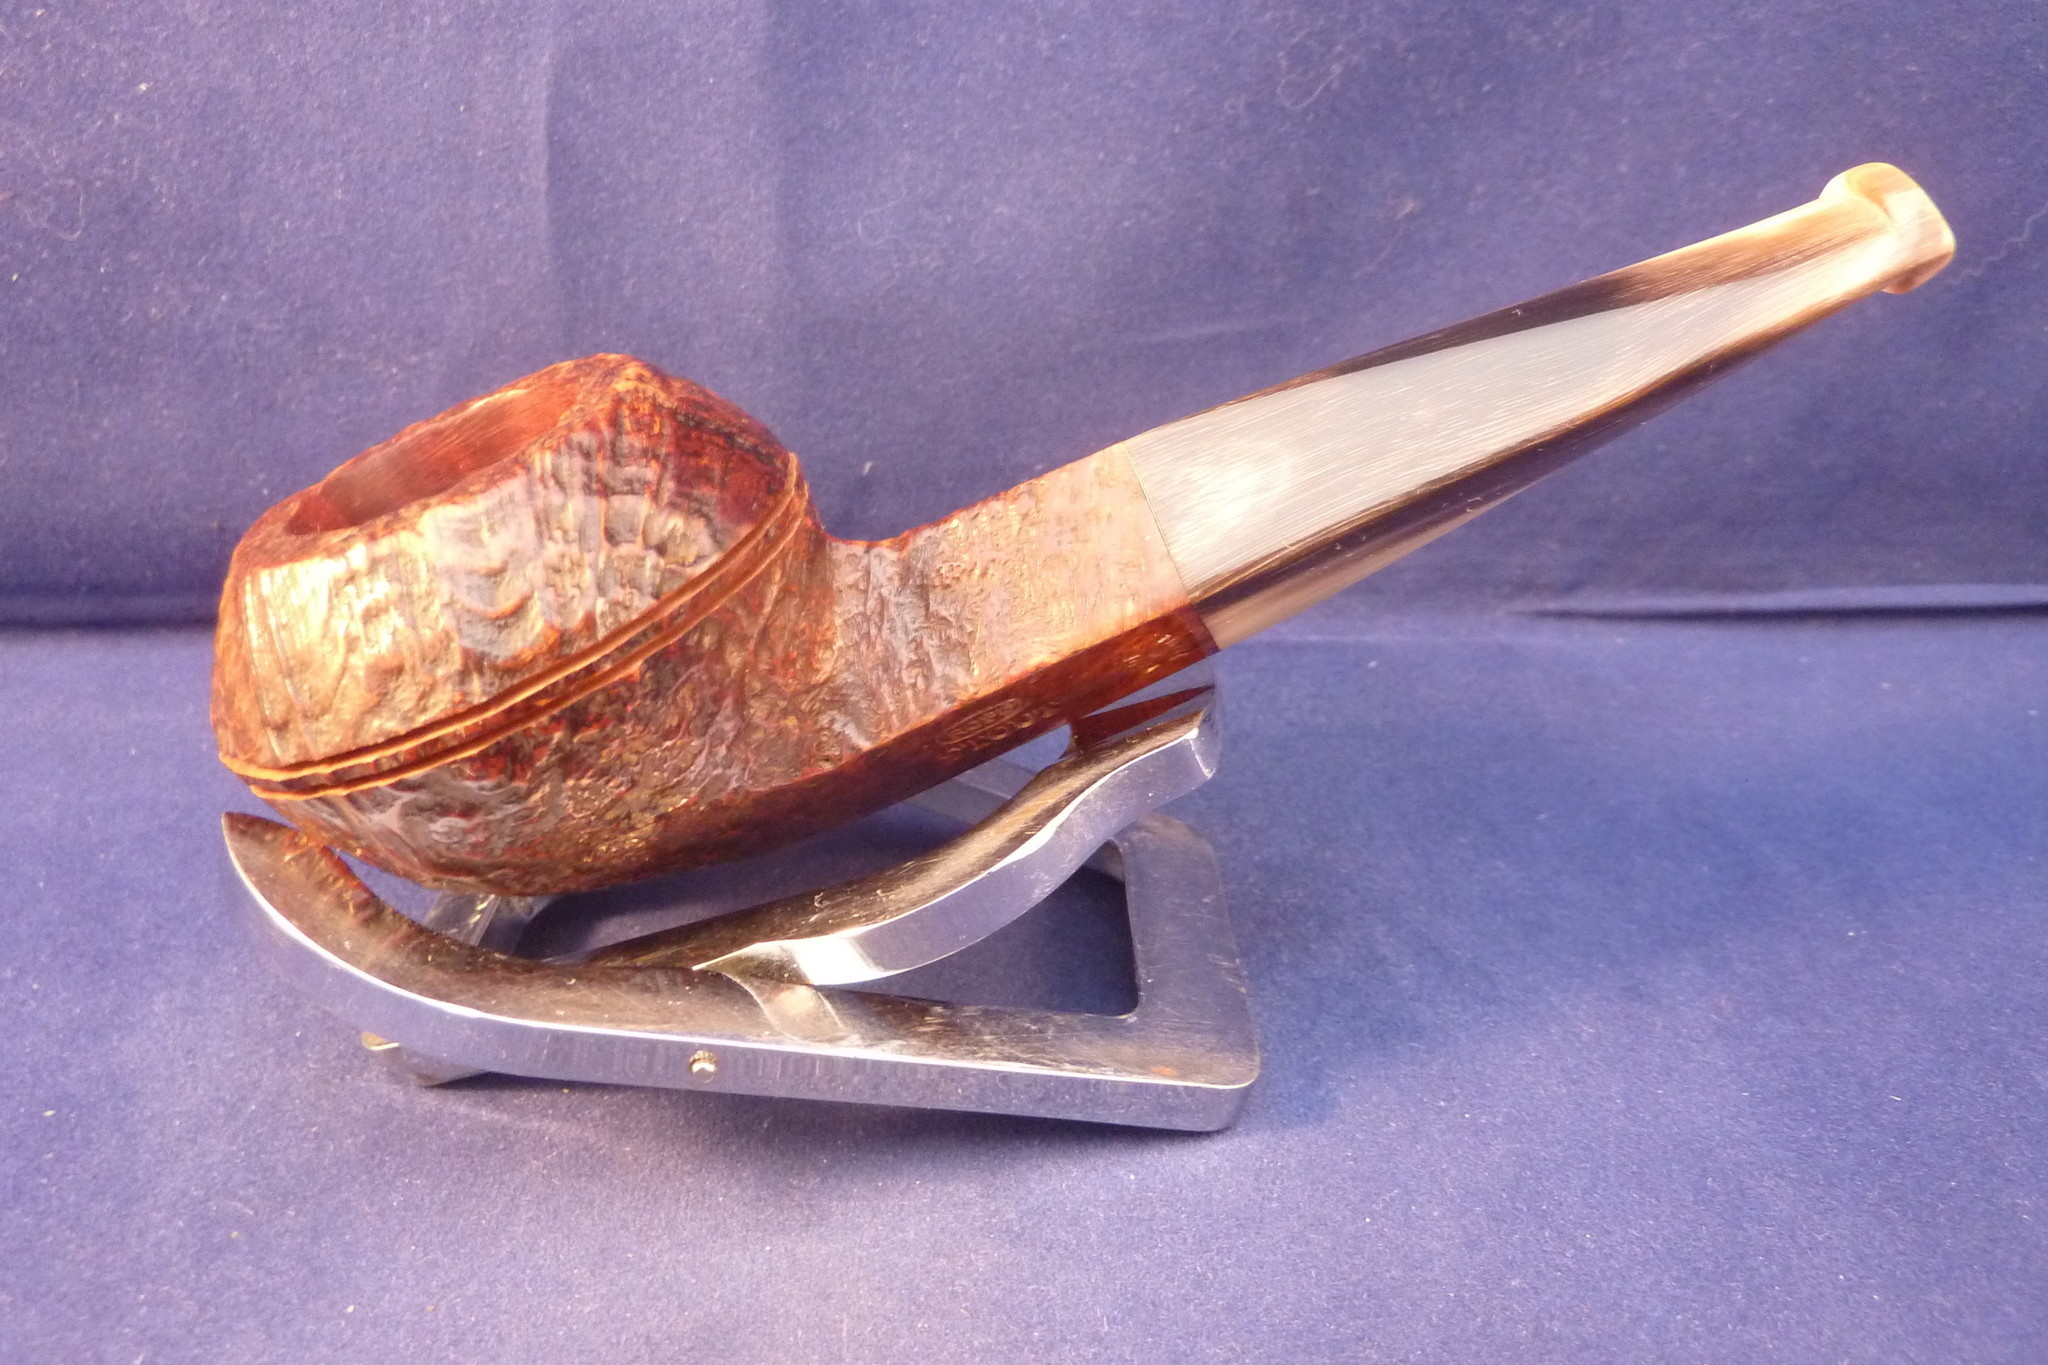 Sold Smoking Pipe Ropp Stout Vintage Sandblasted Bulldog Flat